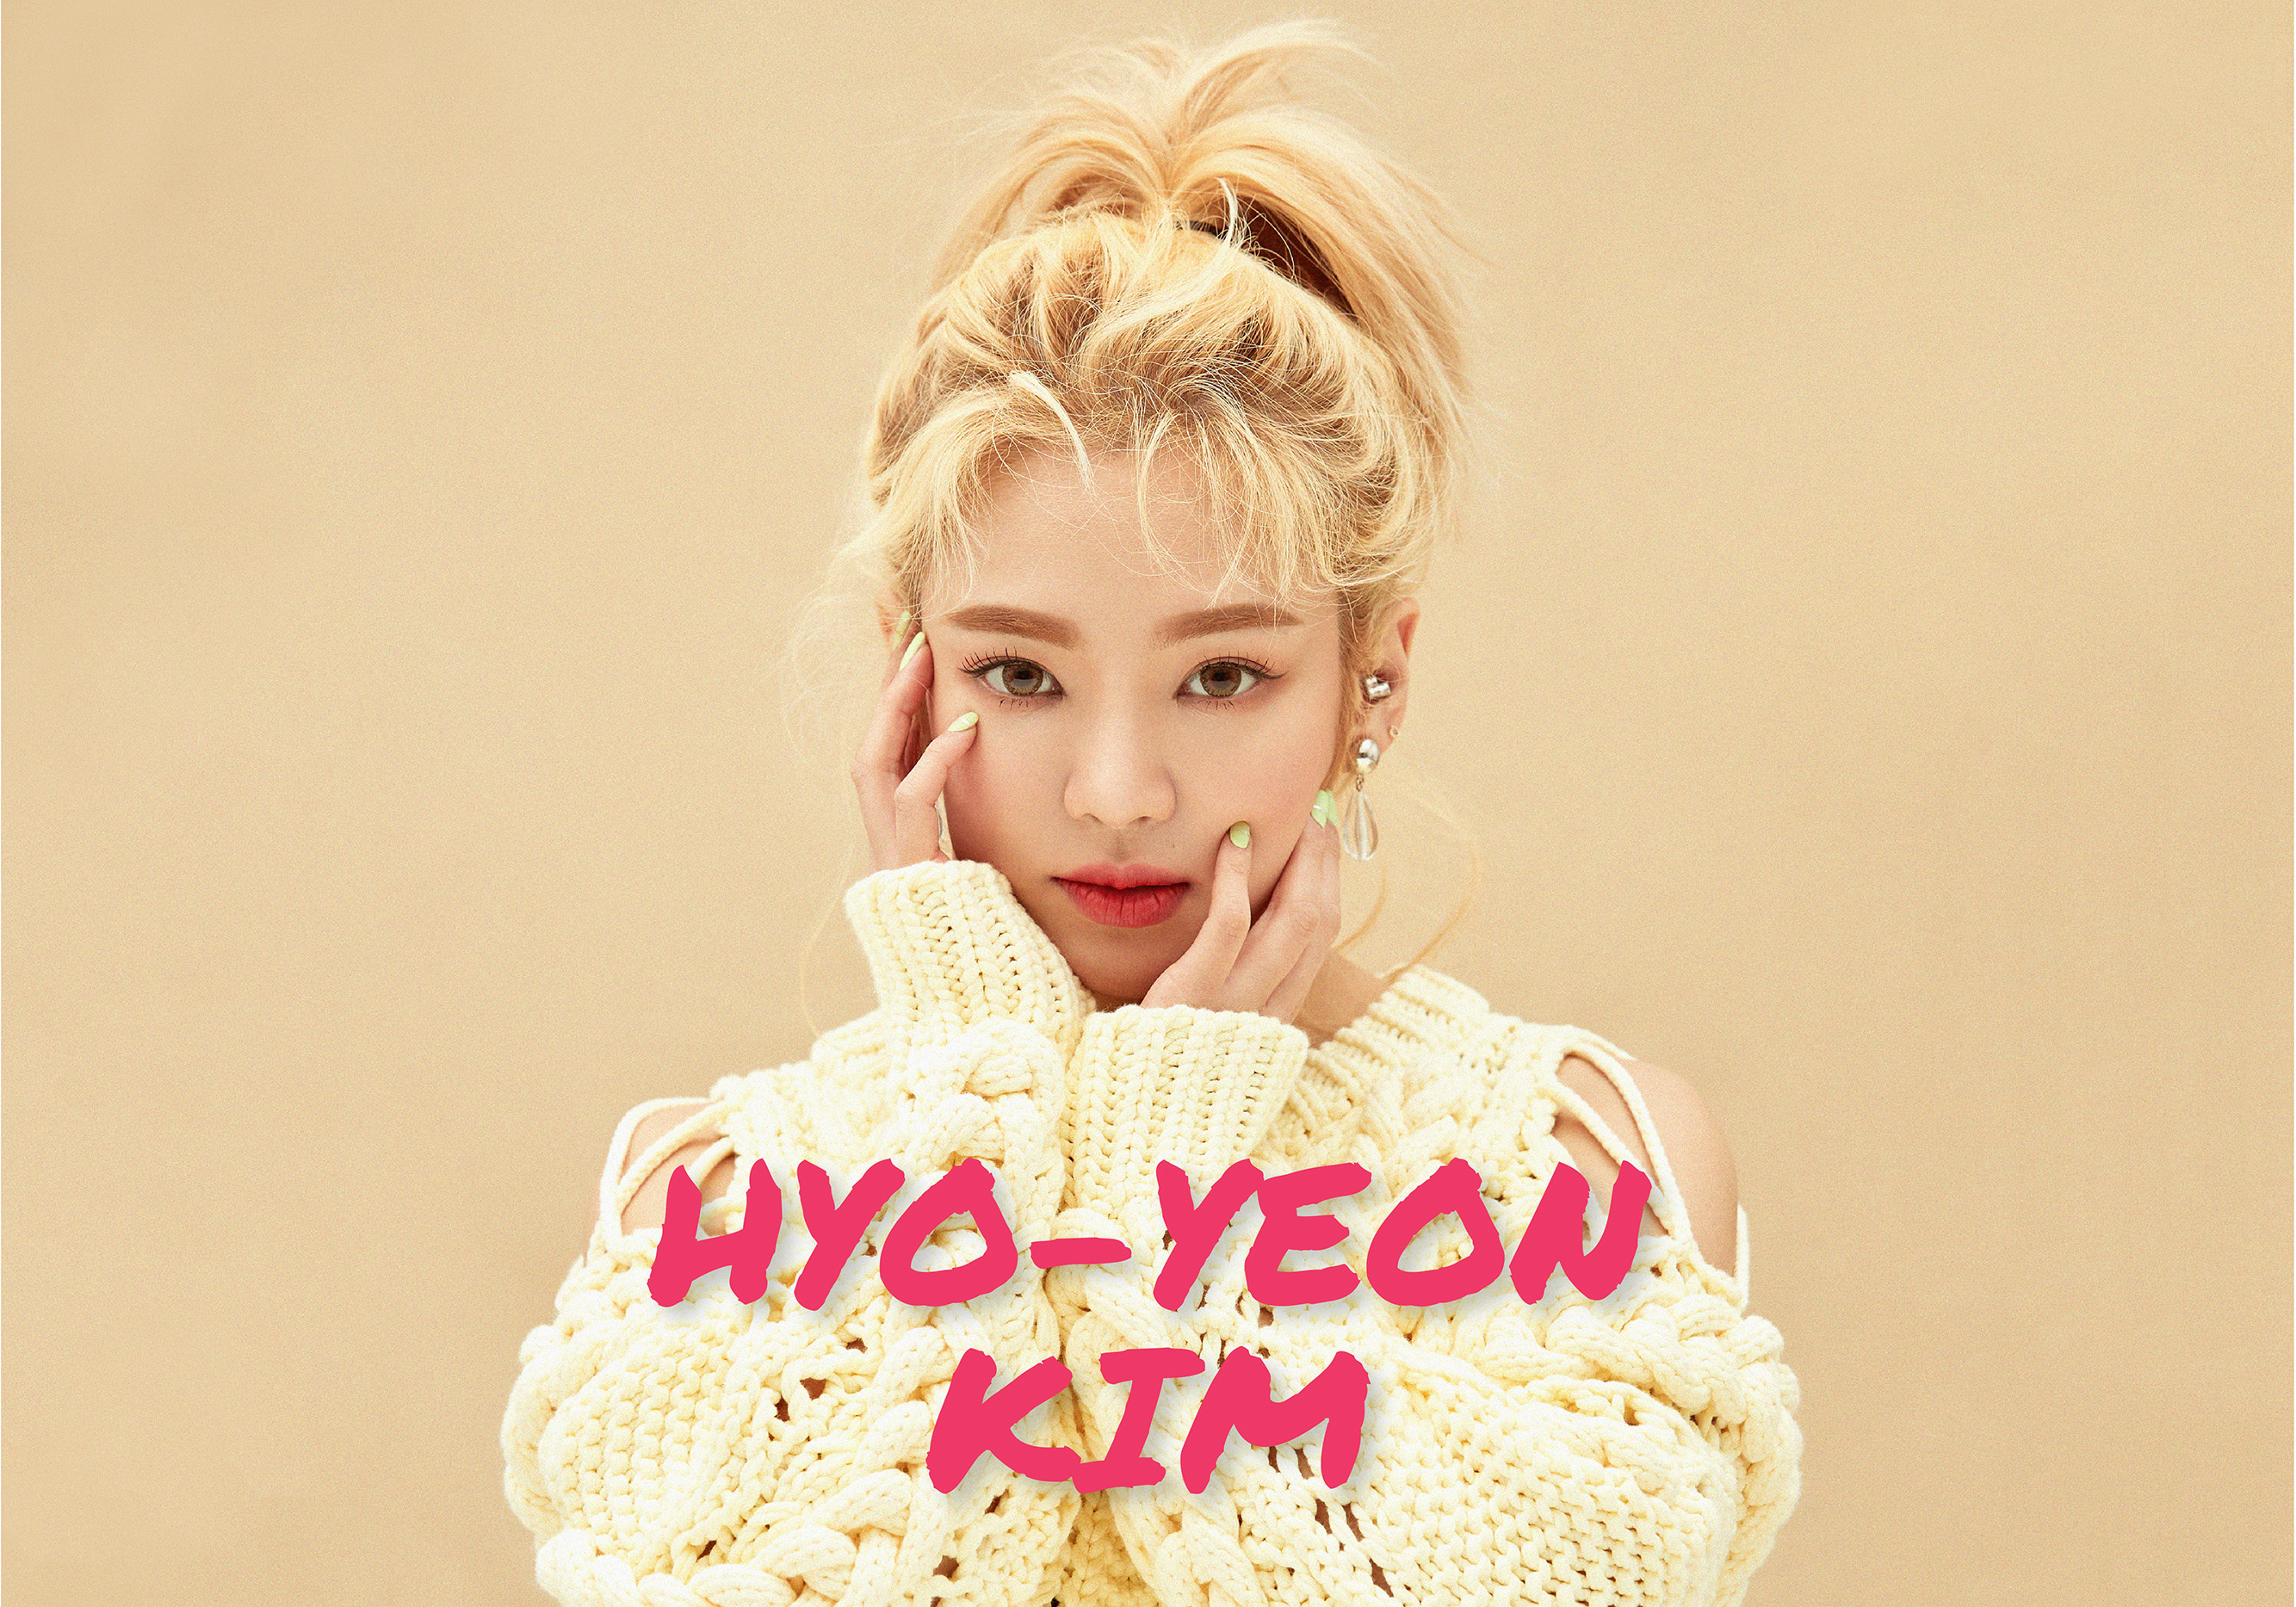 Digital-Cover-Story-layout_Hyo-Yeon Kim